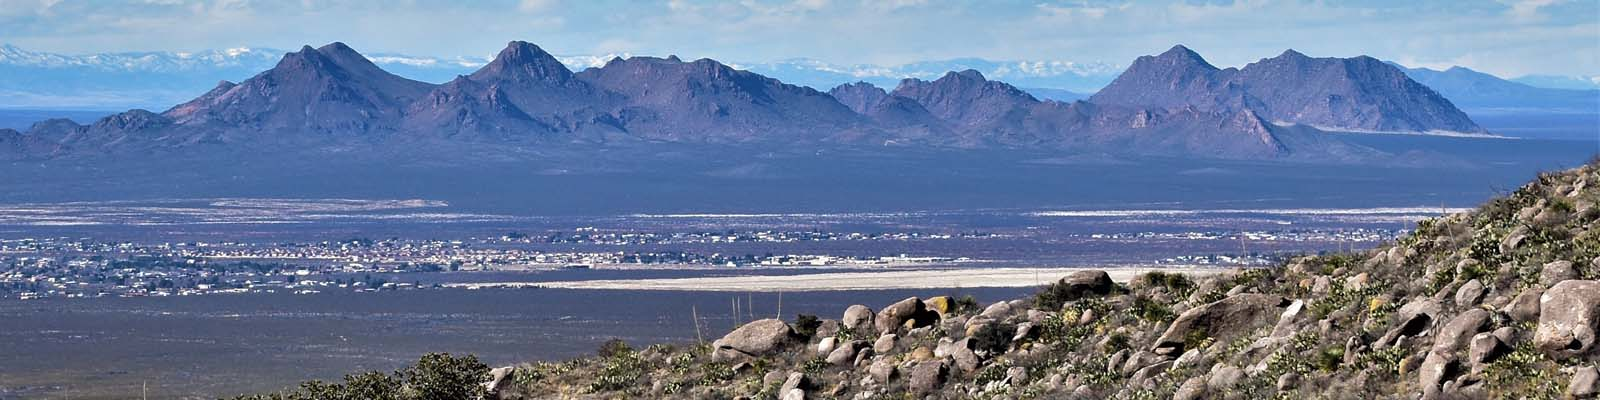 This is an image of a wide valley between mountains in Las Cruces. ASTA-USA provides professional translation services in this city.